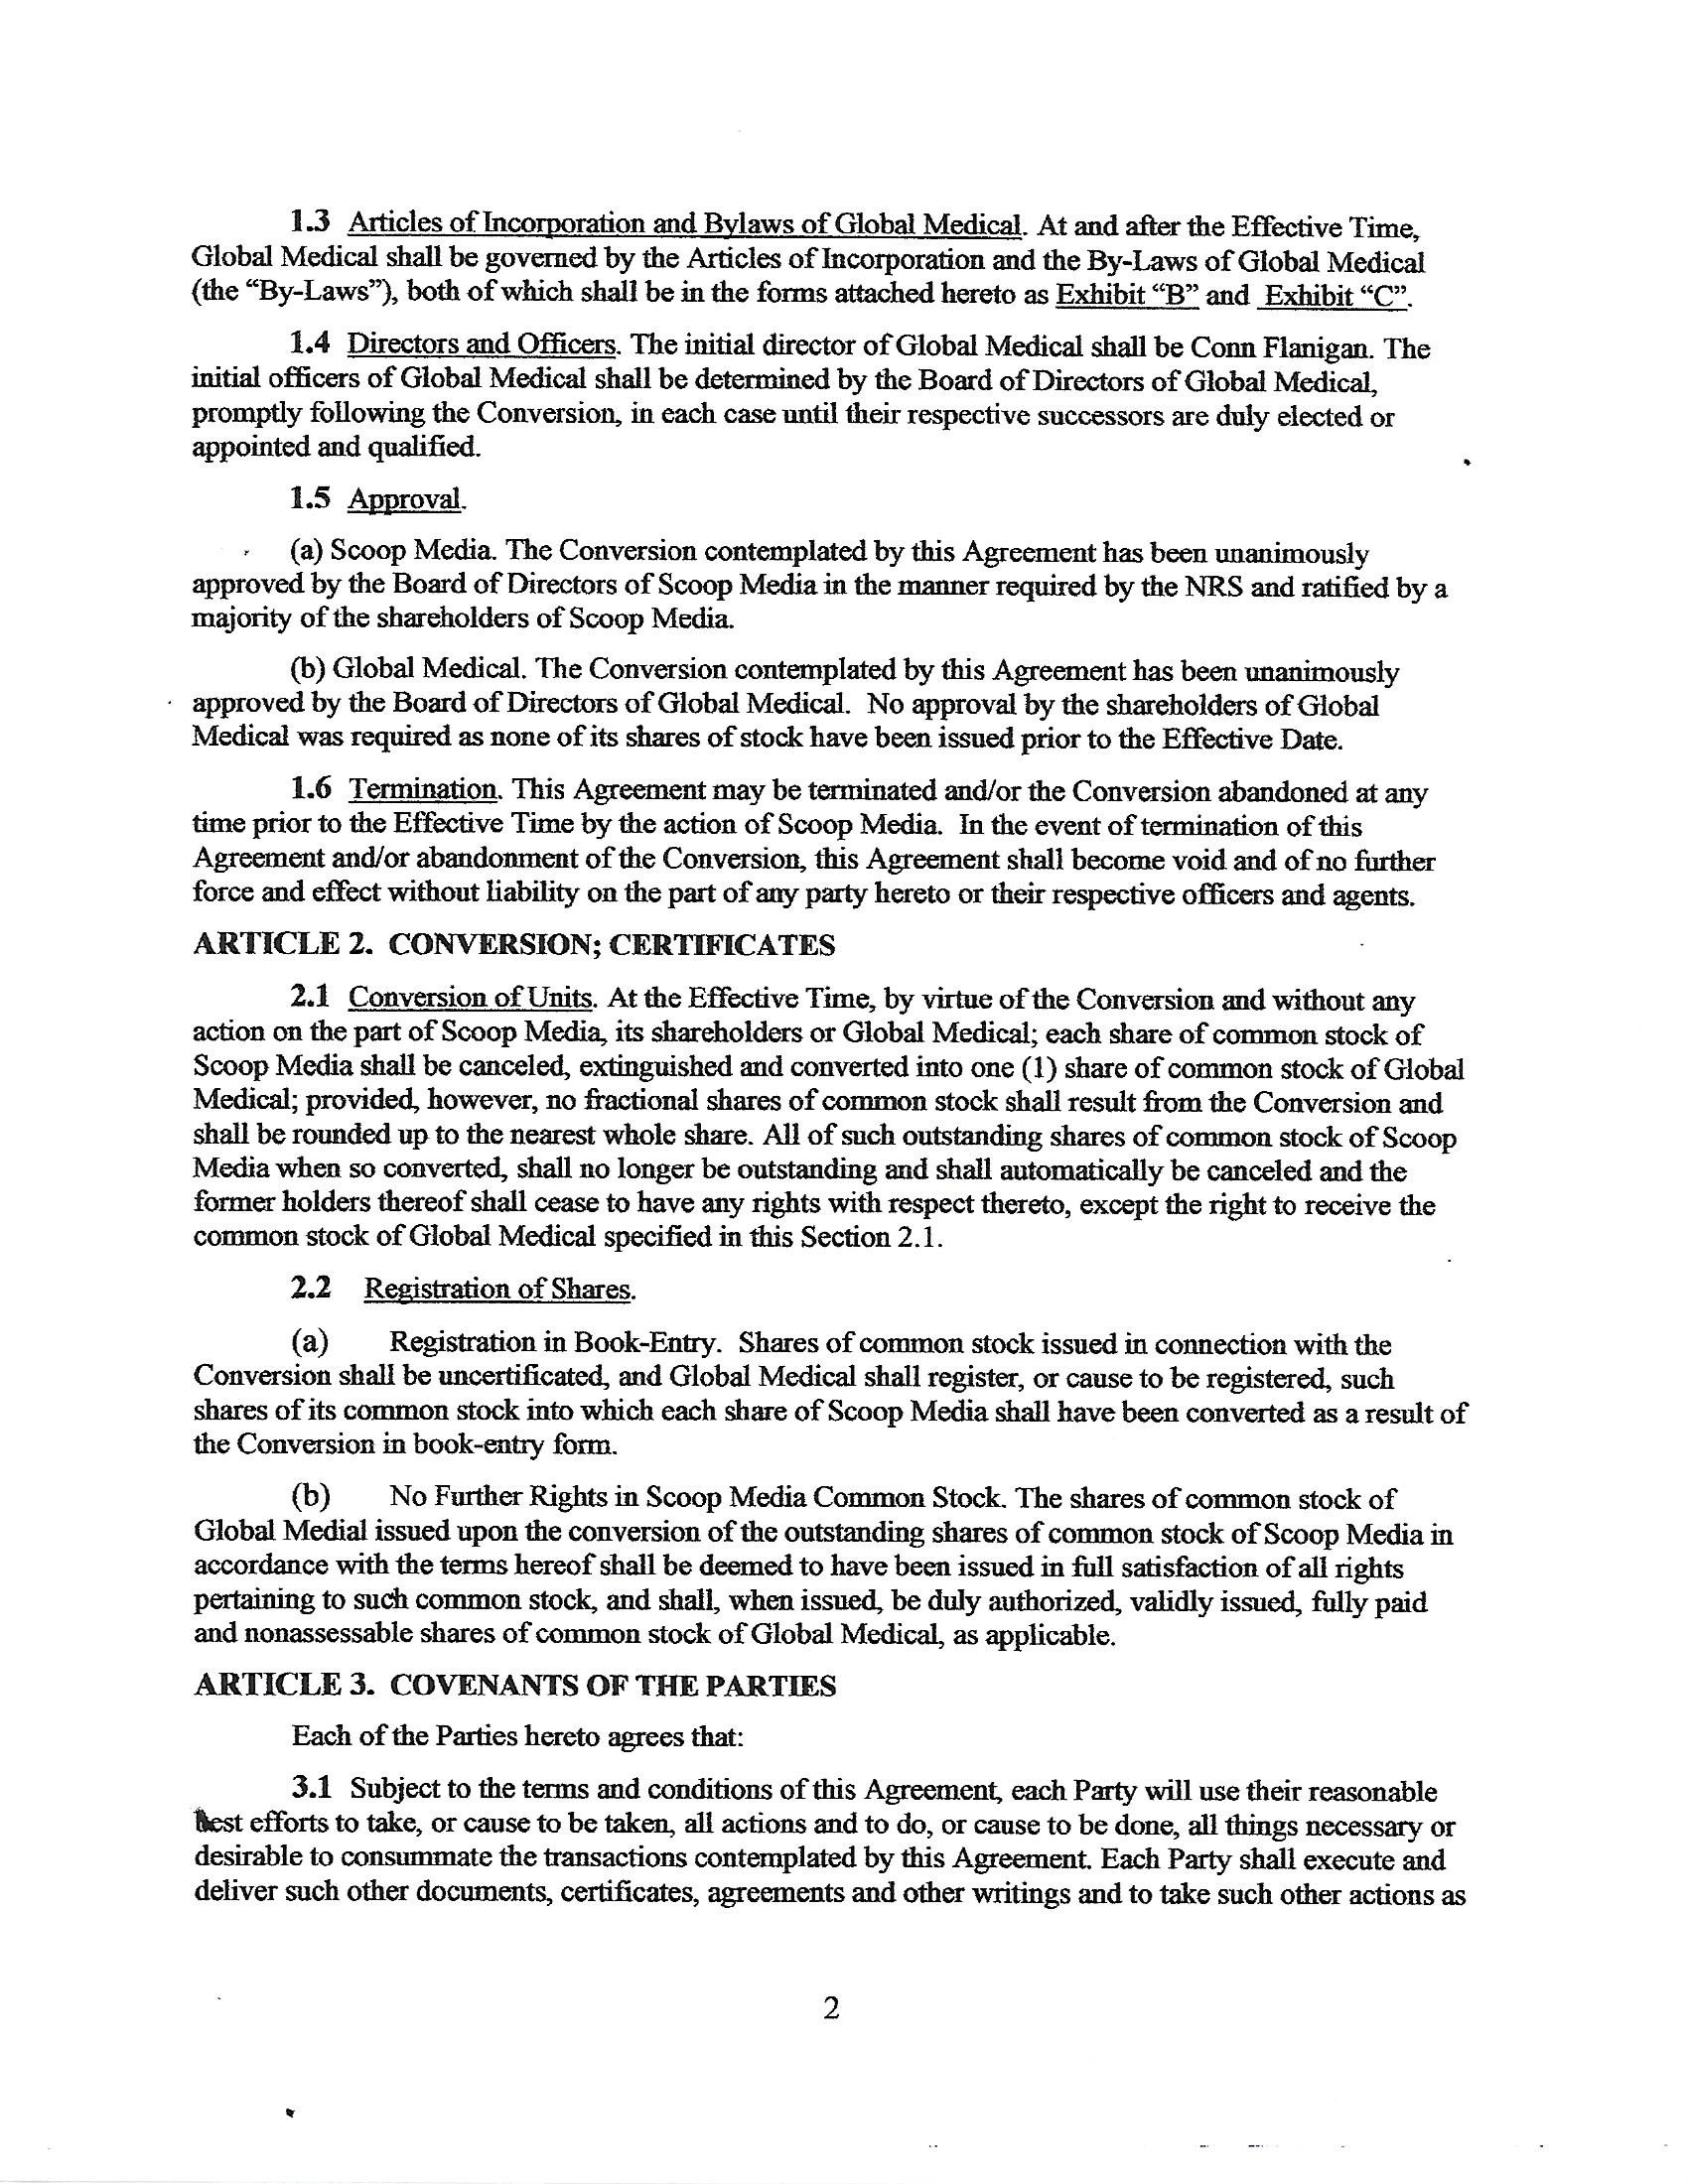 Cease and Desist Letter Breach Of Contract Template - Medical Contract Review Lovely Free Cease and Desist Letter Pdf